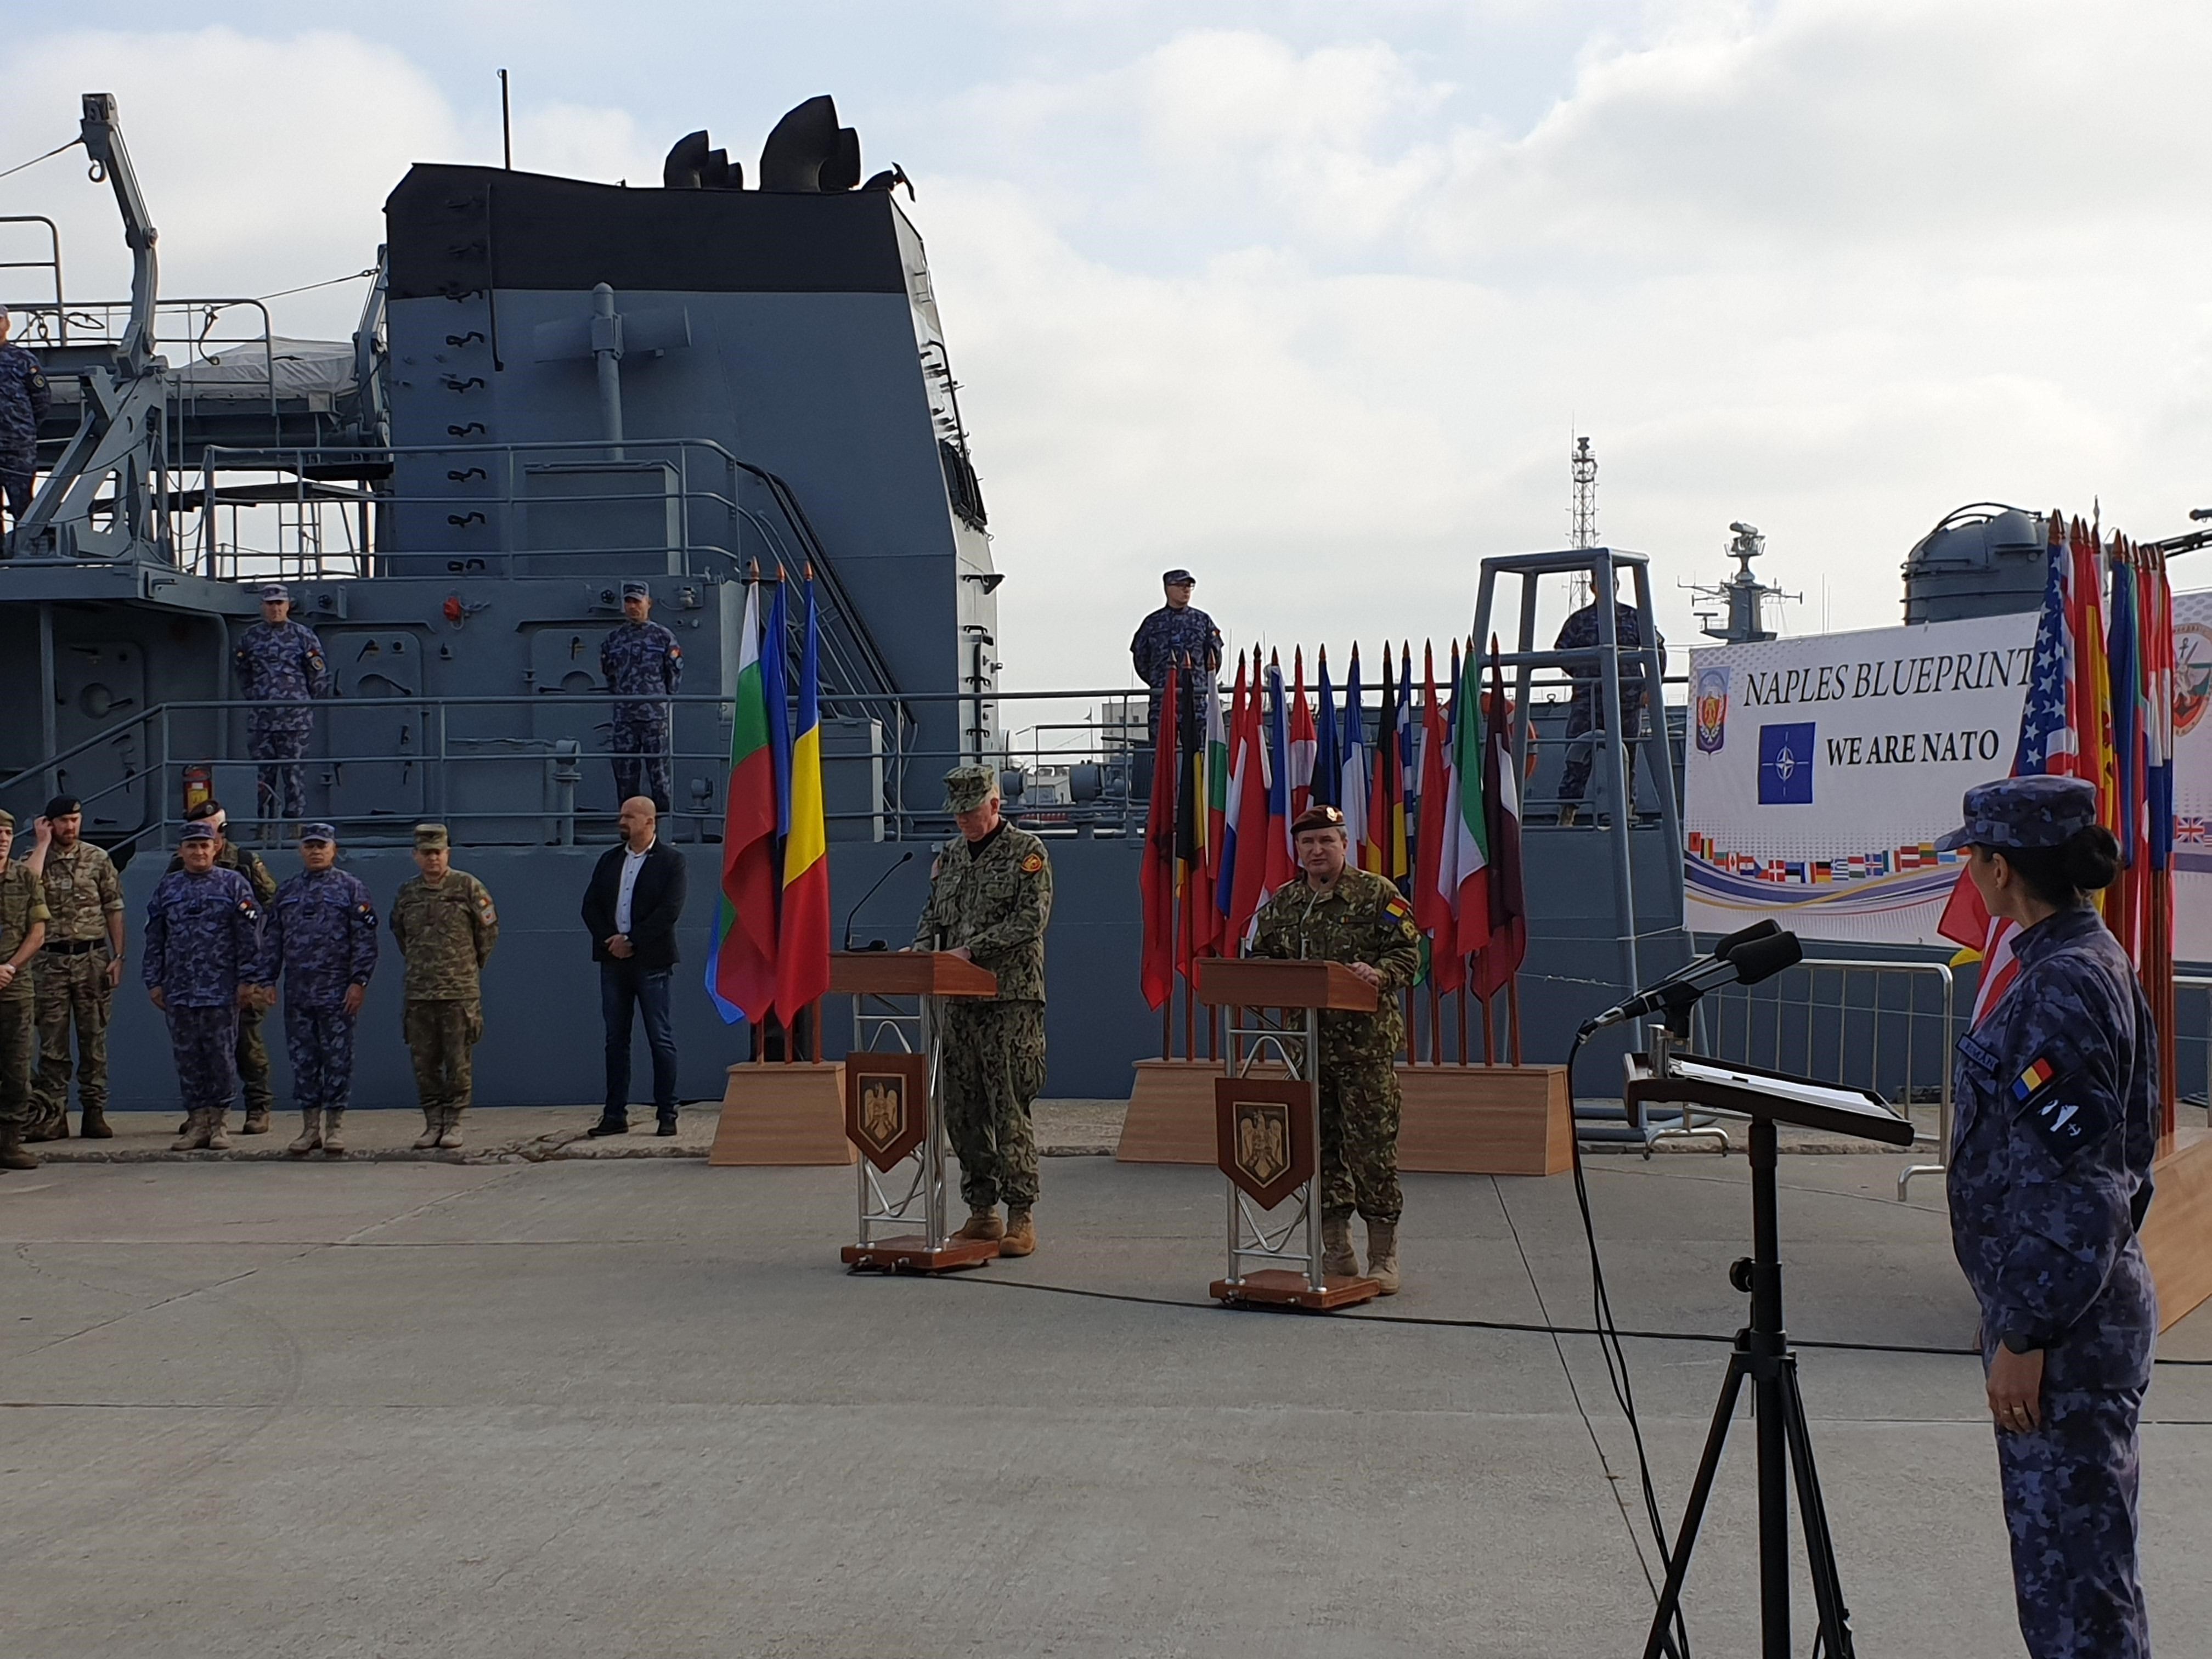 NATO performs 'Naples Blueprint 2019' exercise in Romania and Bulgaria